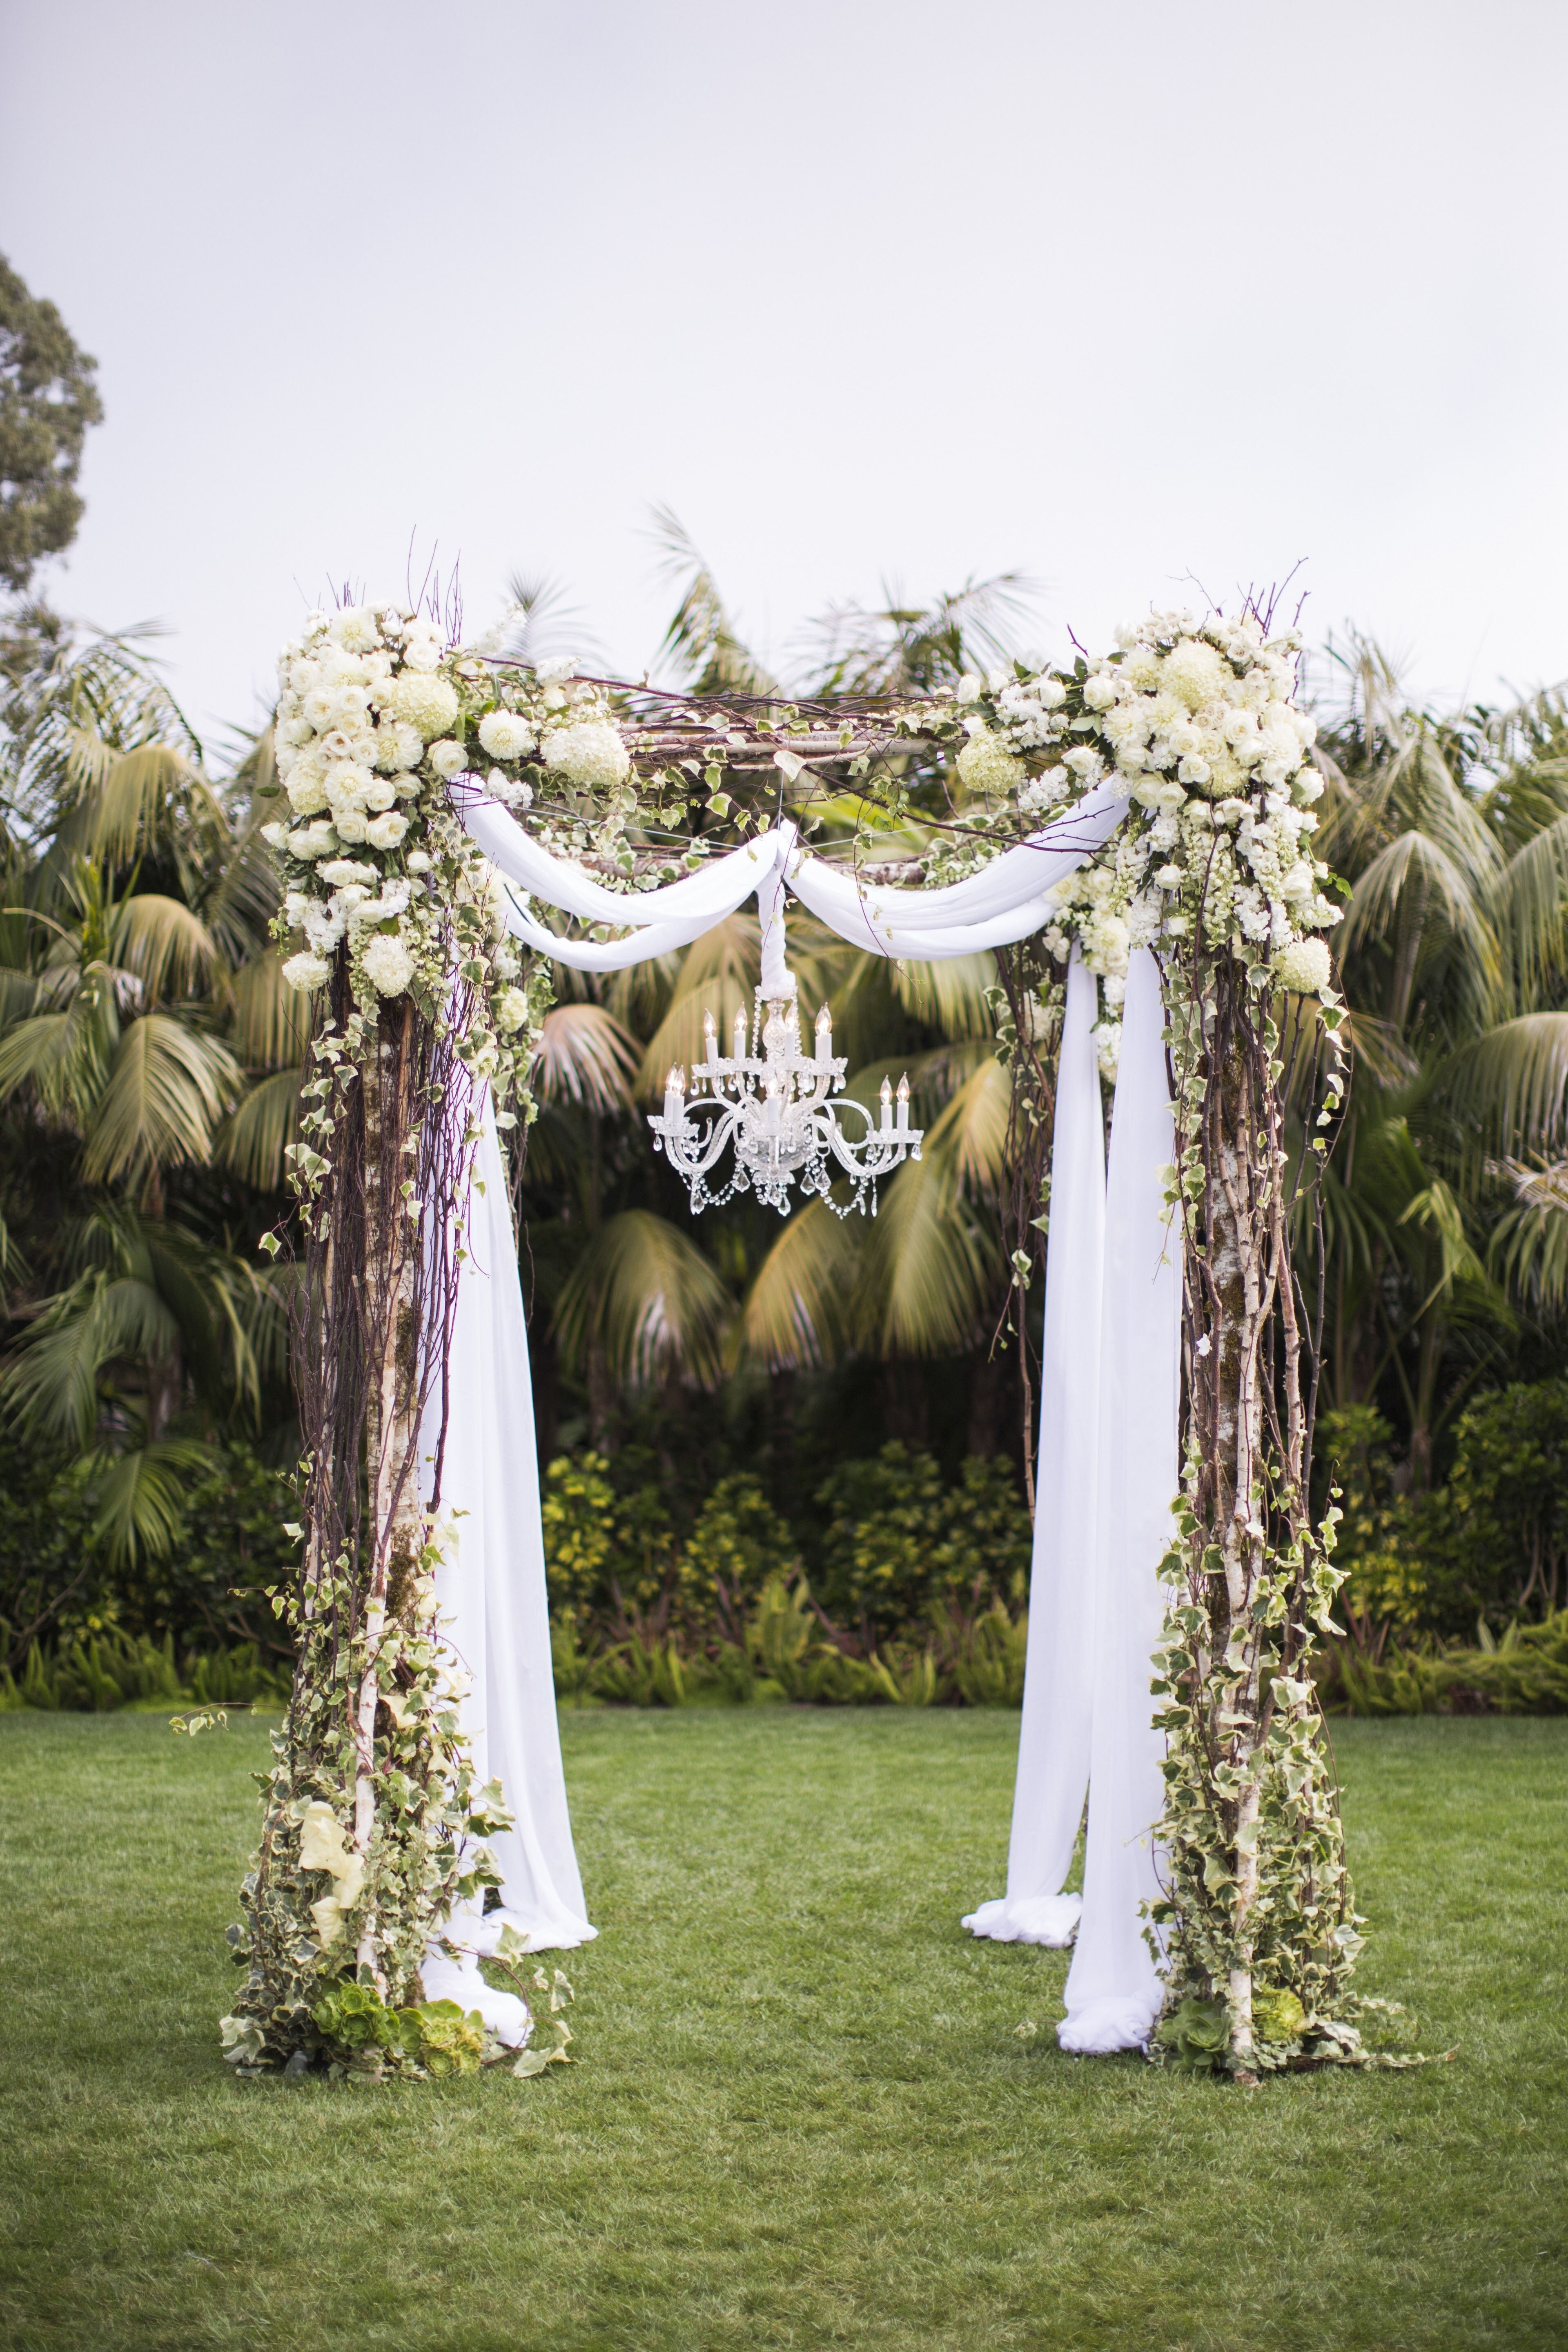 A Dazzling Wedding Arch With Sparkly Chandelier On Monte Vista Lawn LuxBride FourSeasons